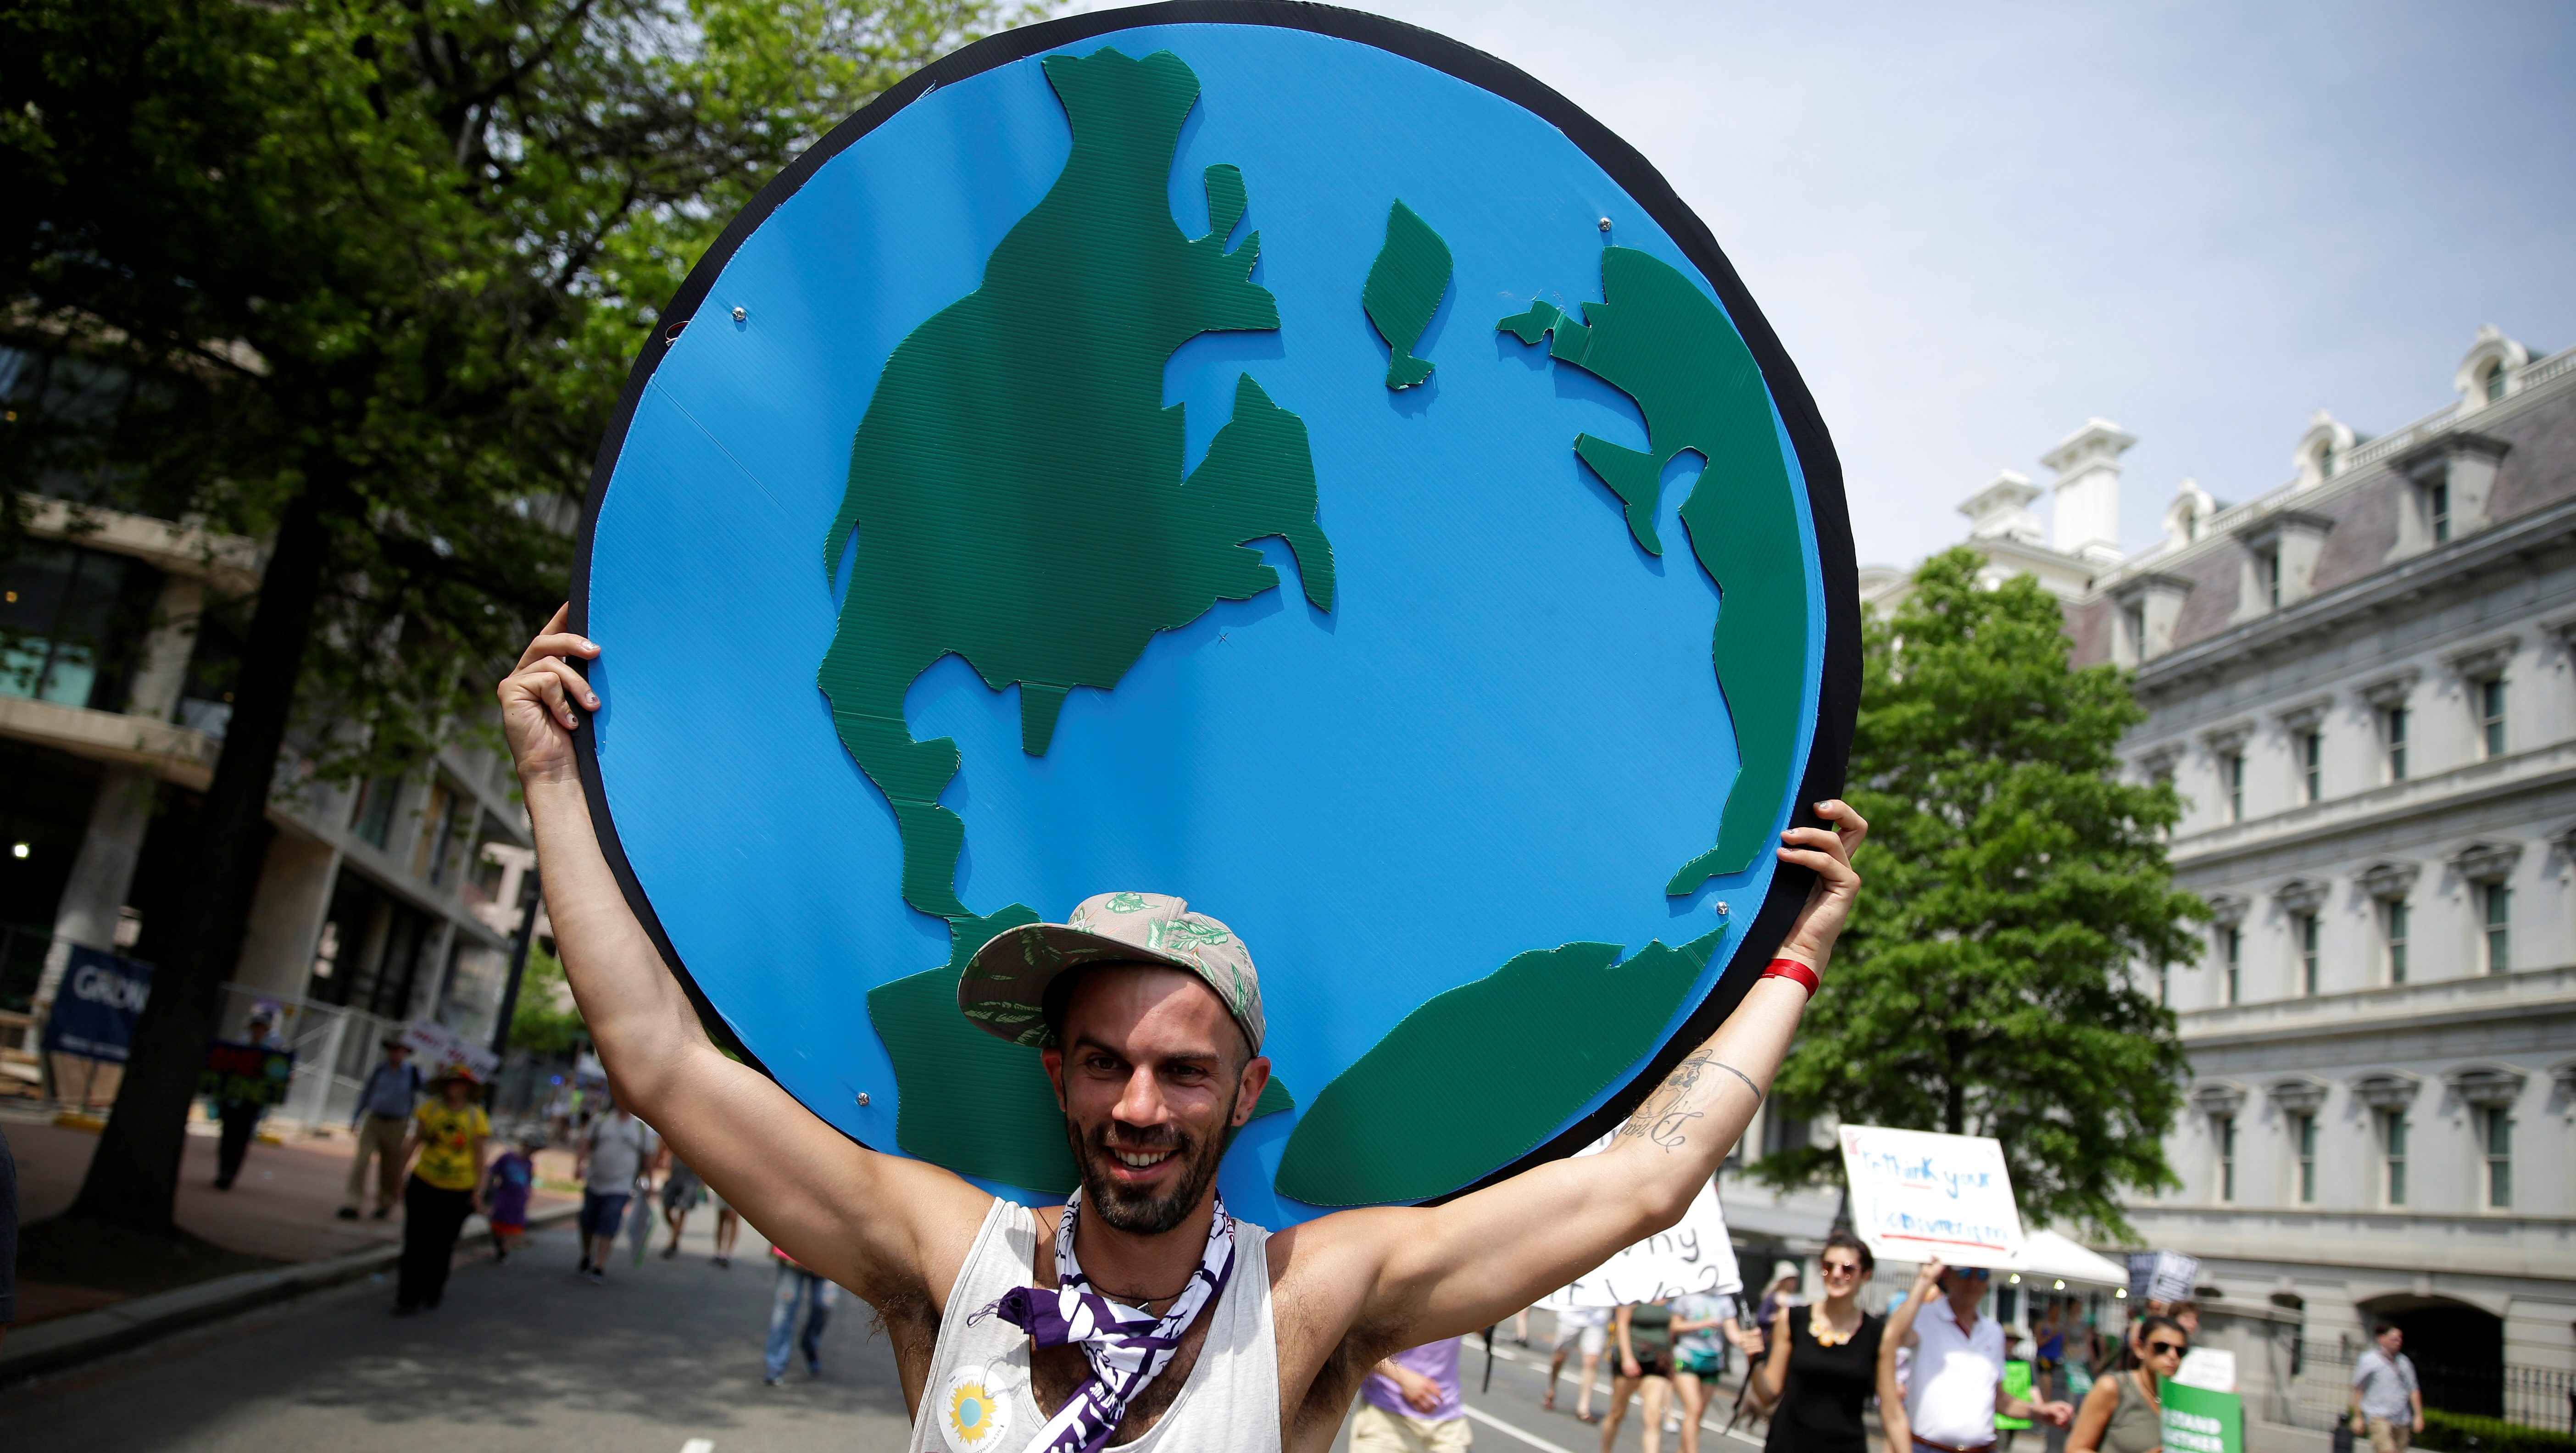 A protester carries a sign depicting the earth during the Peoples Climate March near the White House in Washington, U.S., April 29, 2017.      REUTERS/Joshua Roberts - RTS14HJN